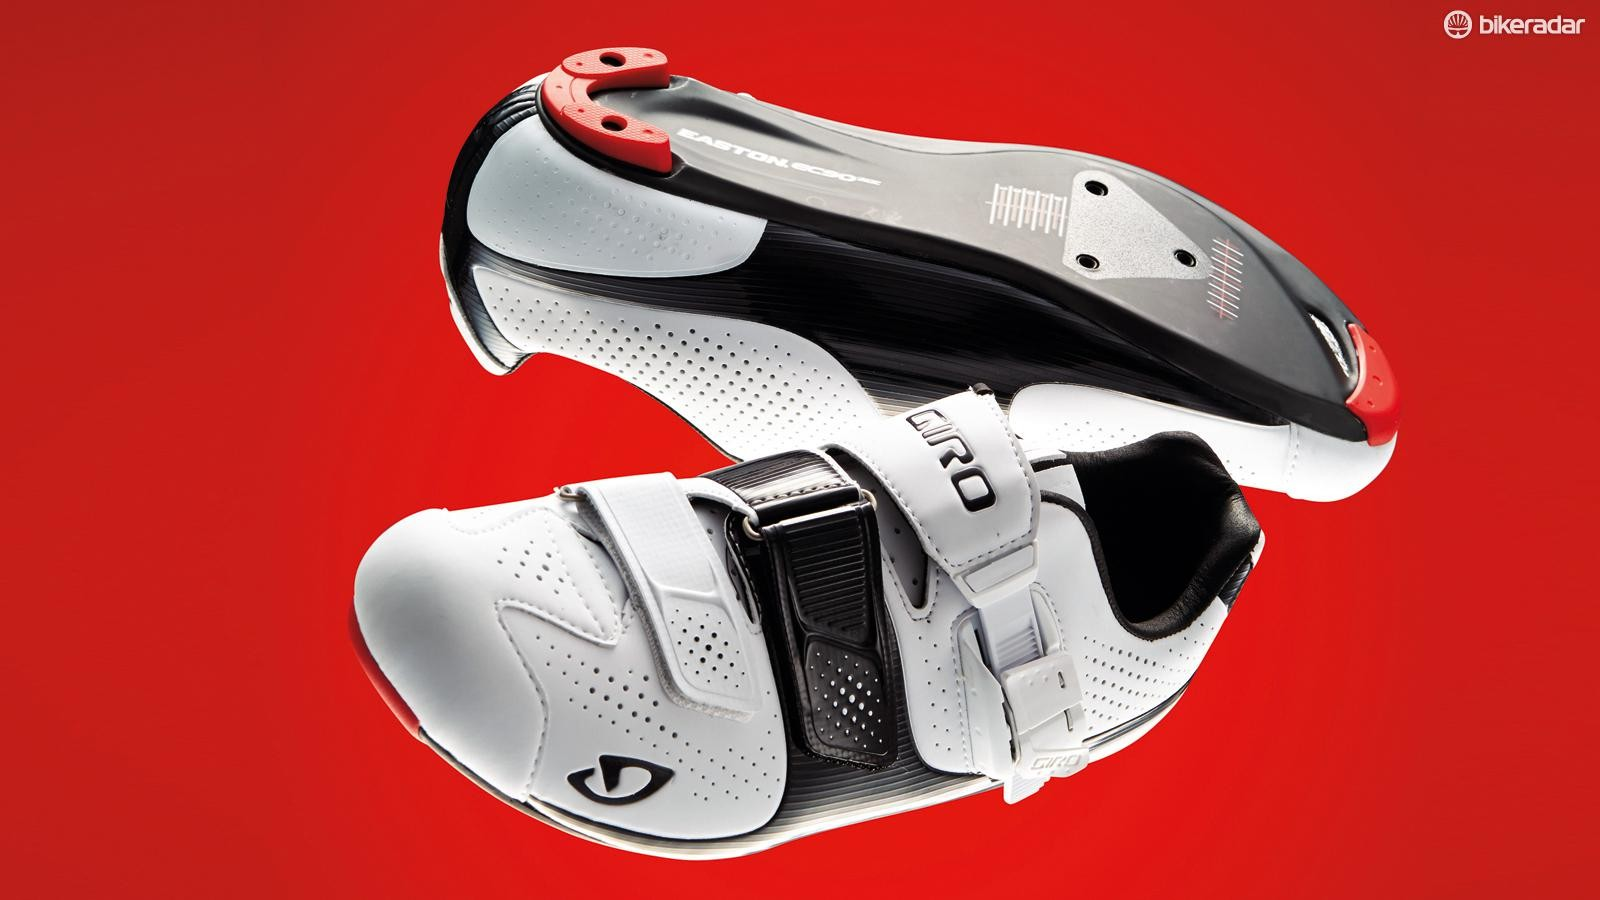 Giro's SuperNatural Fit footbed has three interchangeable arch supports, helping you to fine tune your fit